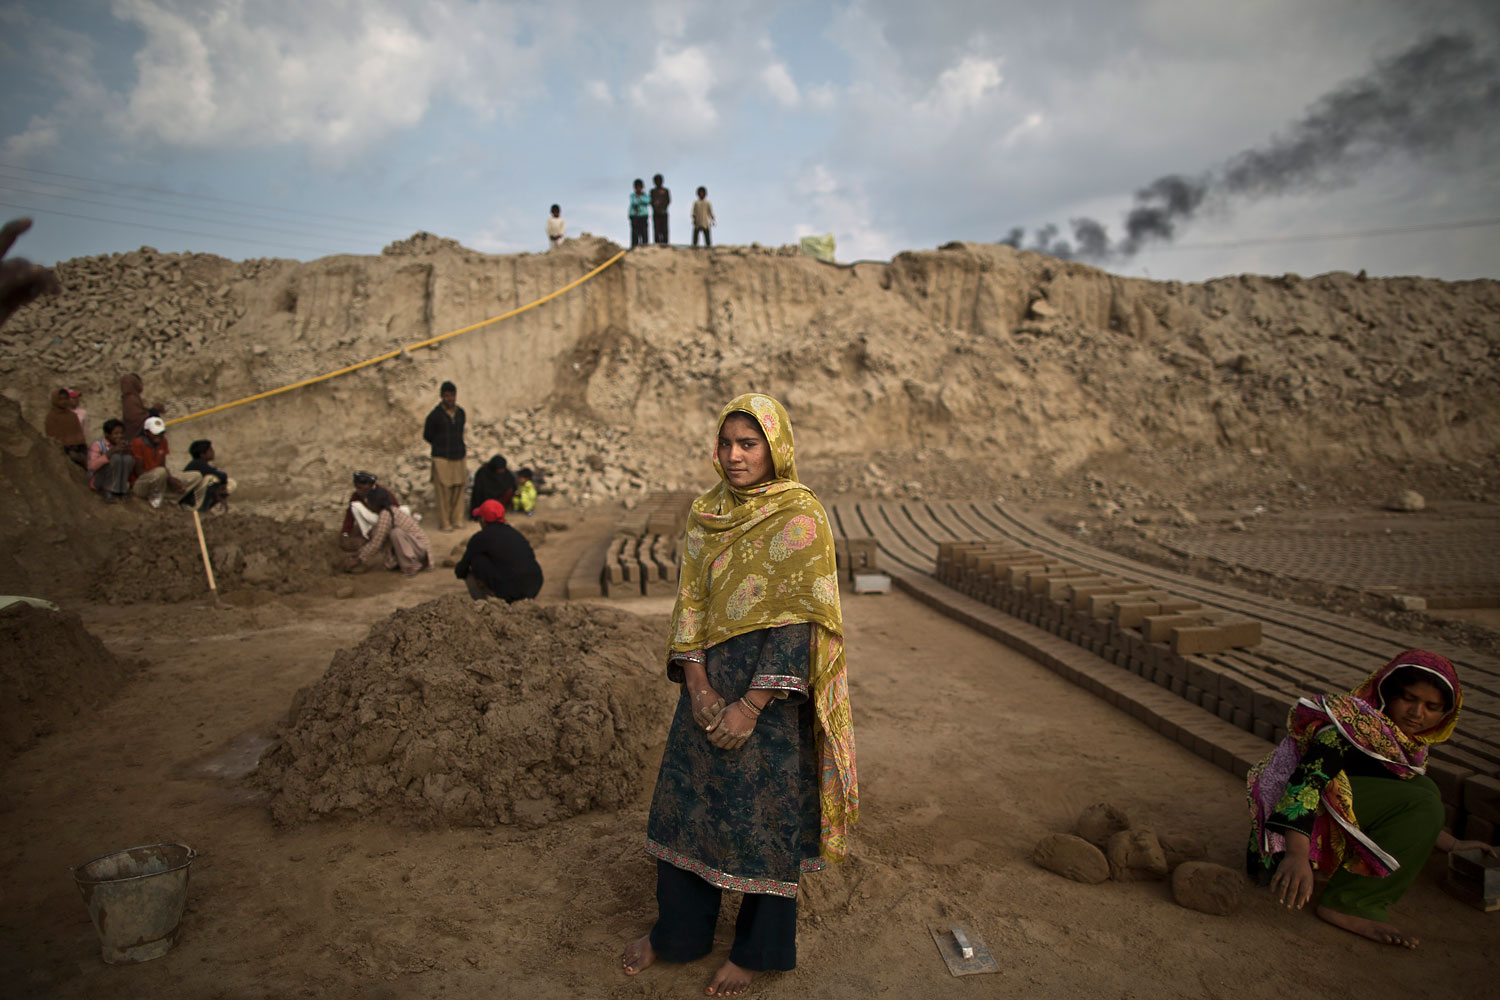 Navila Shirali, 17, a Pakistani brick factory worker, poses for a picture at the site of her work in Mandra, near Rawalpindi, Pakistan, March 5, 2014. Navila's father is in debt to his employer the amount of 500,000 rupees (approximately $5000).